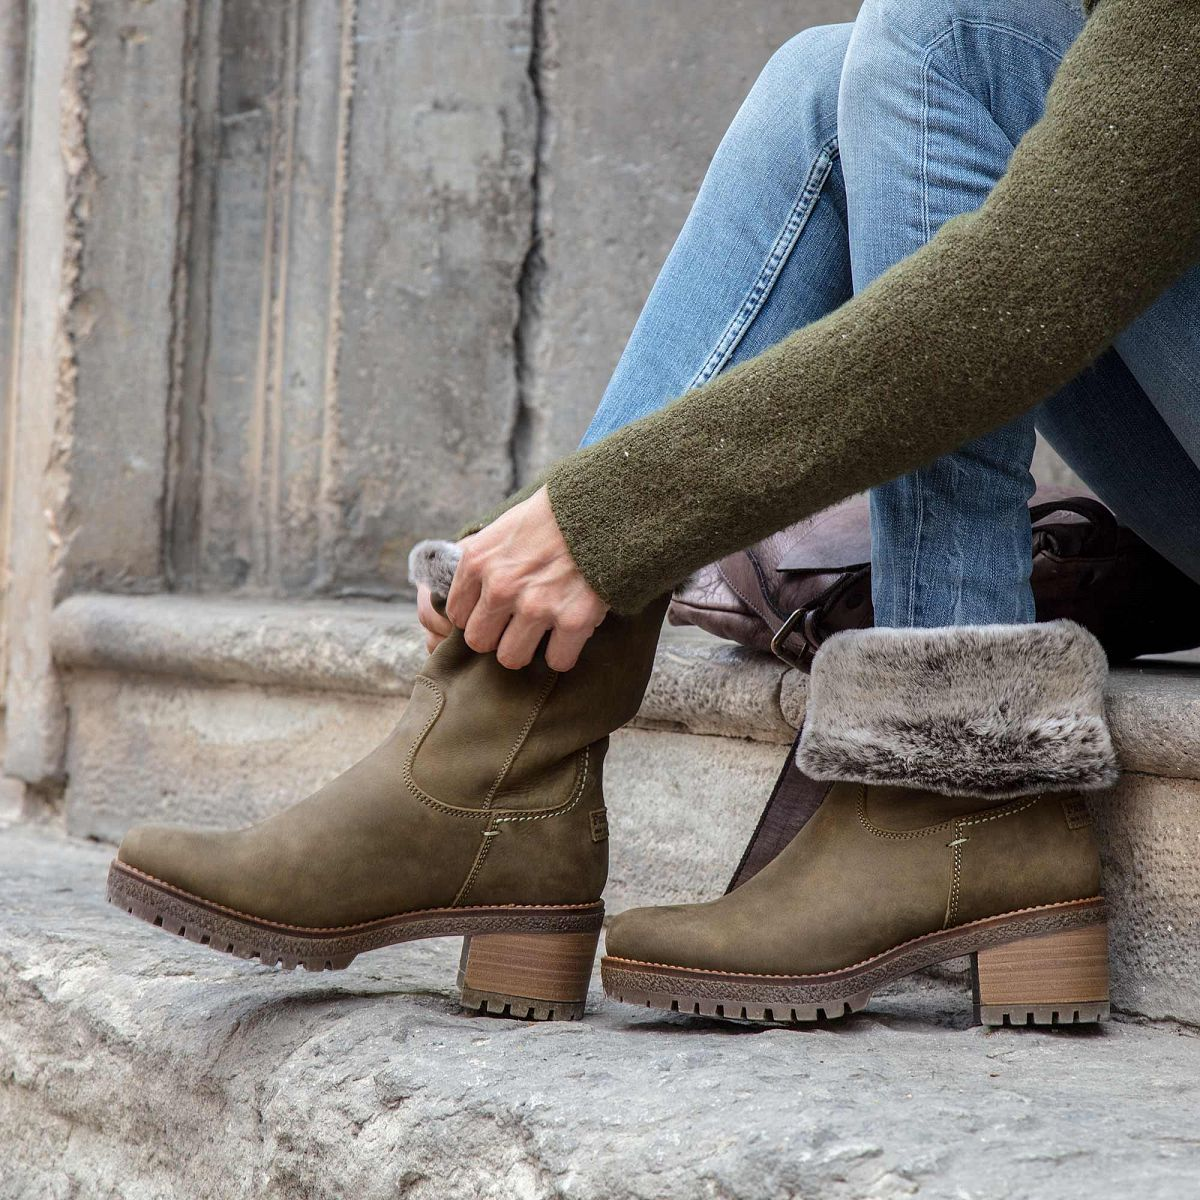 Womens Boot Piola Khaki Panama Jack Official Store Inside Heels Karen Khaky 37 Leather In With A Fur Lining